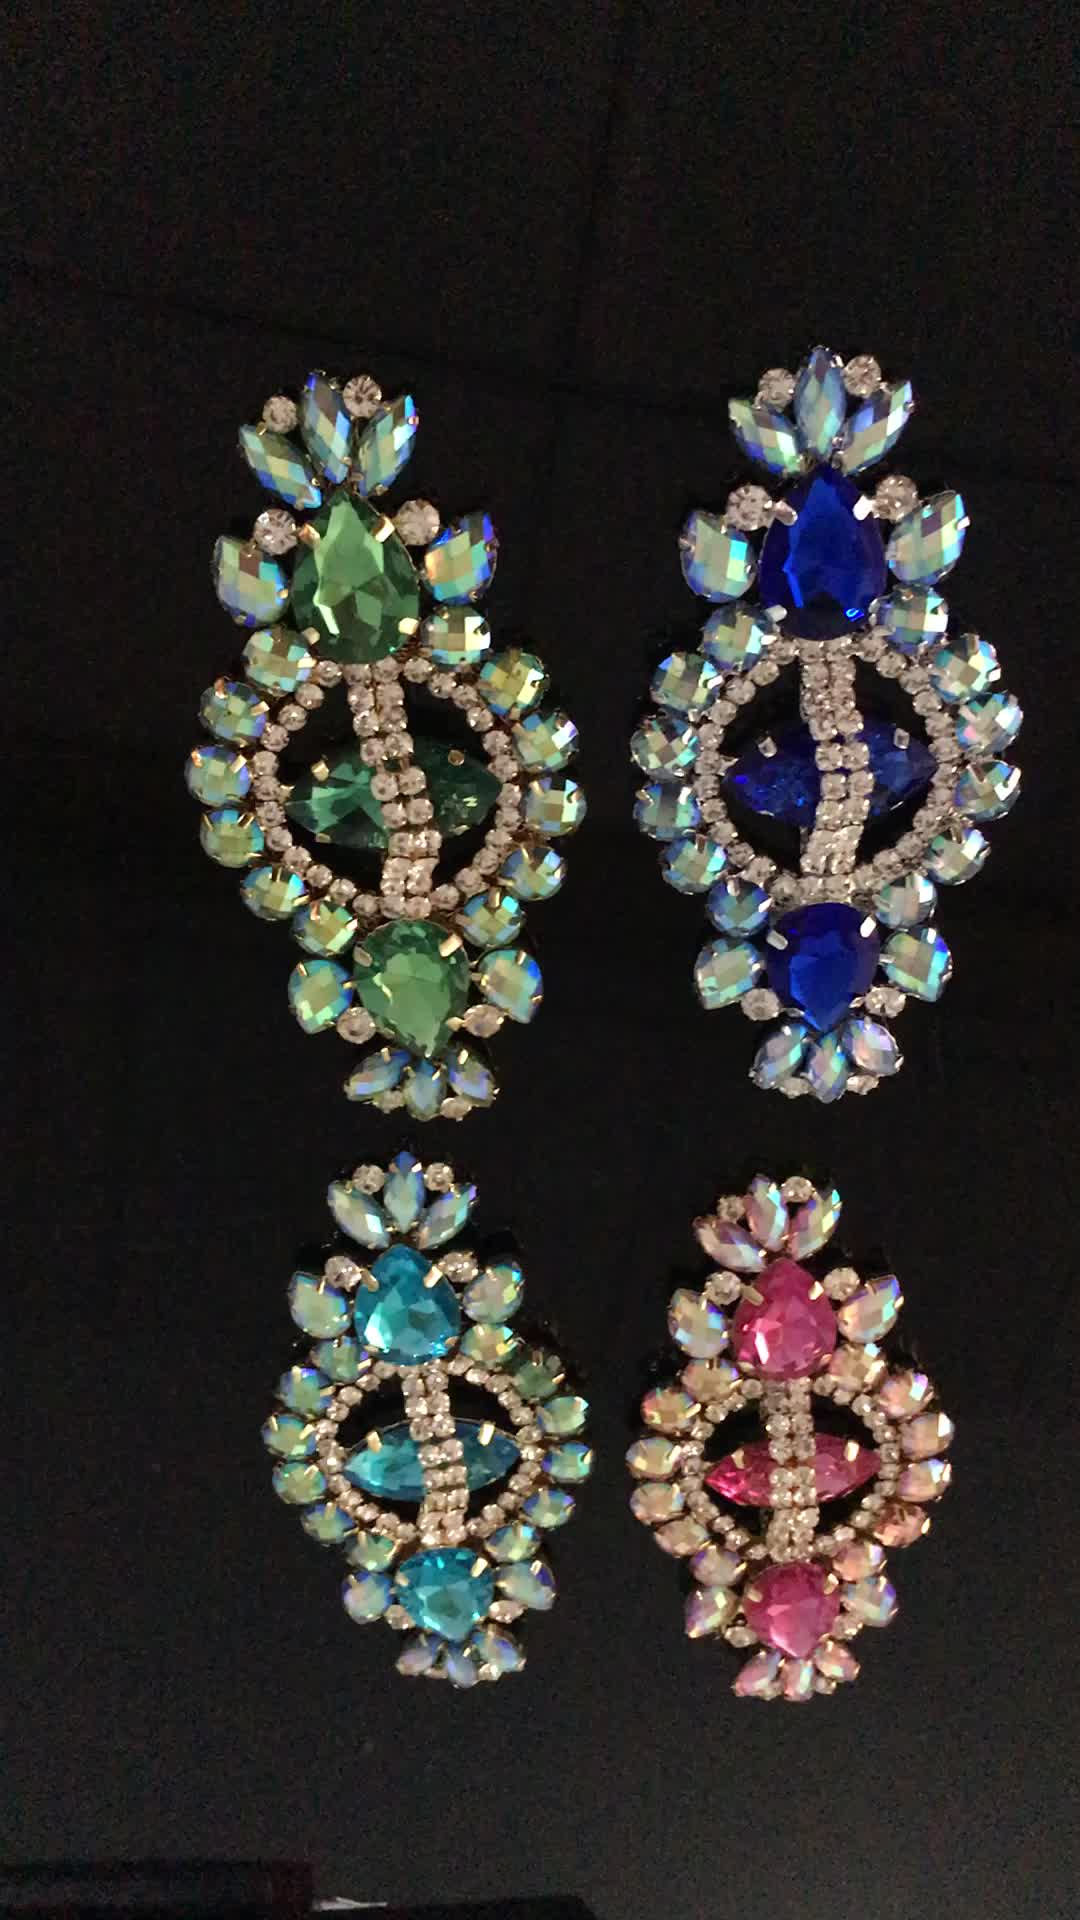 Colorful resin acrylic stone Wedding large Brooch Wholesale for fashion dress